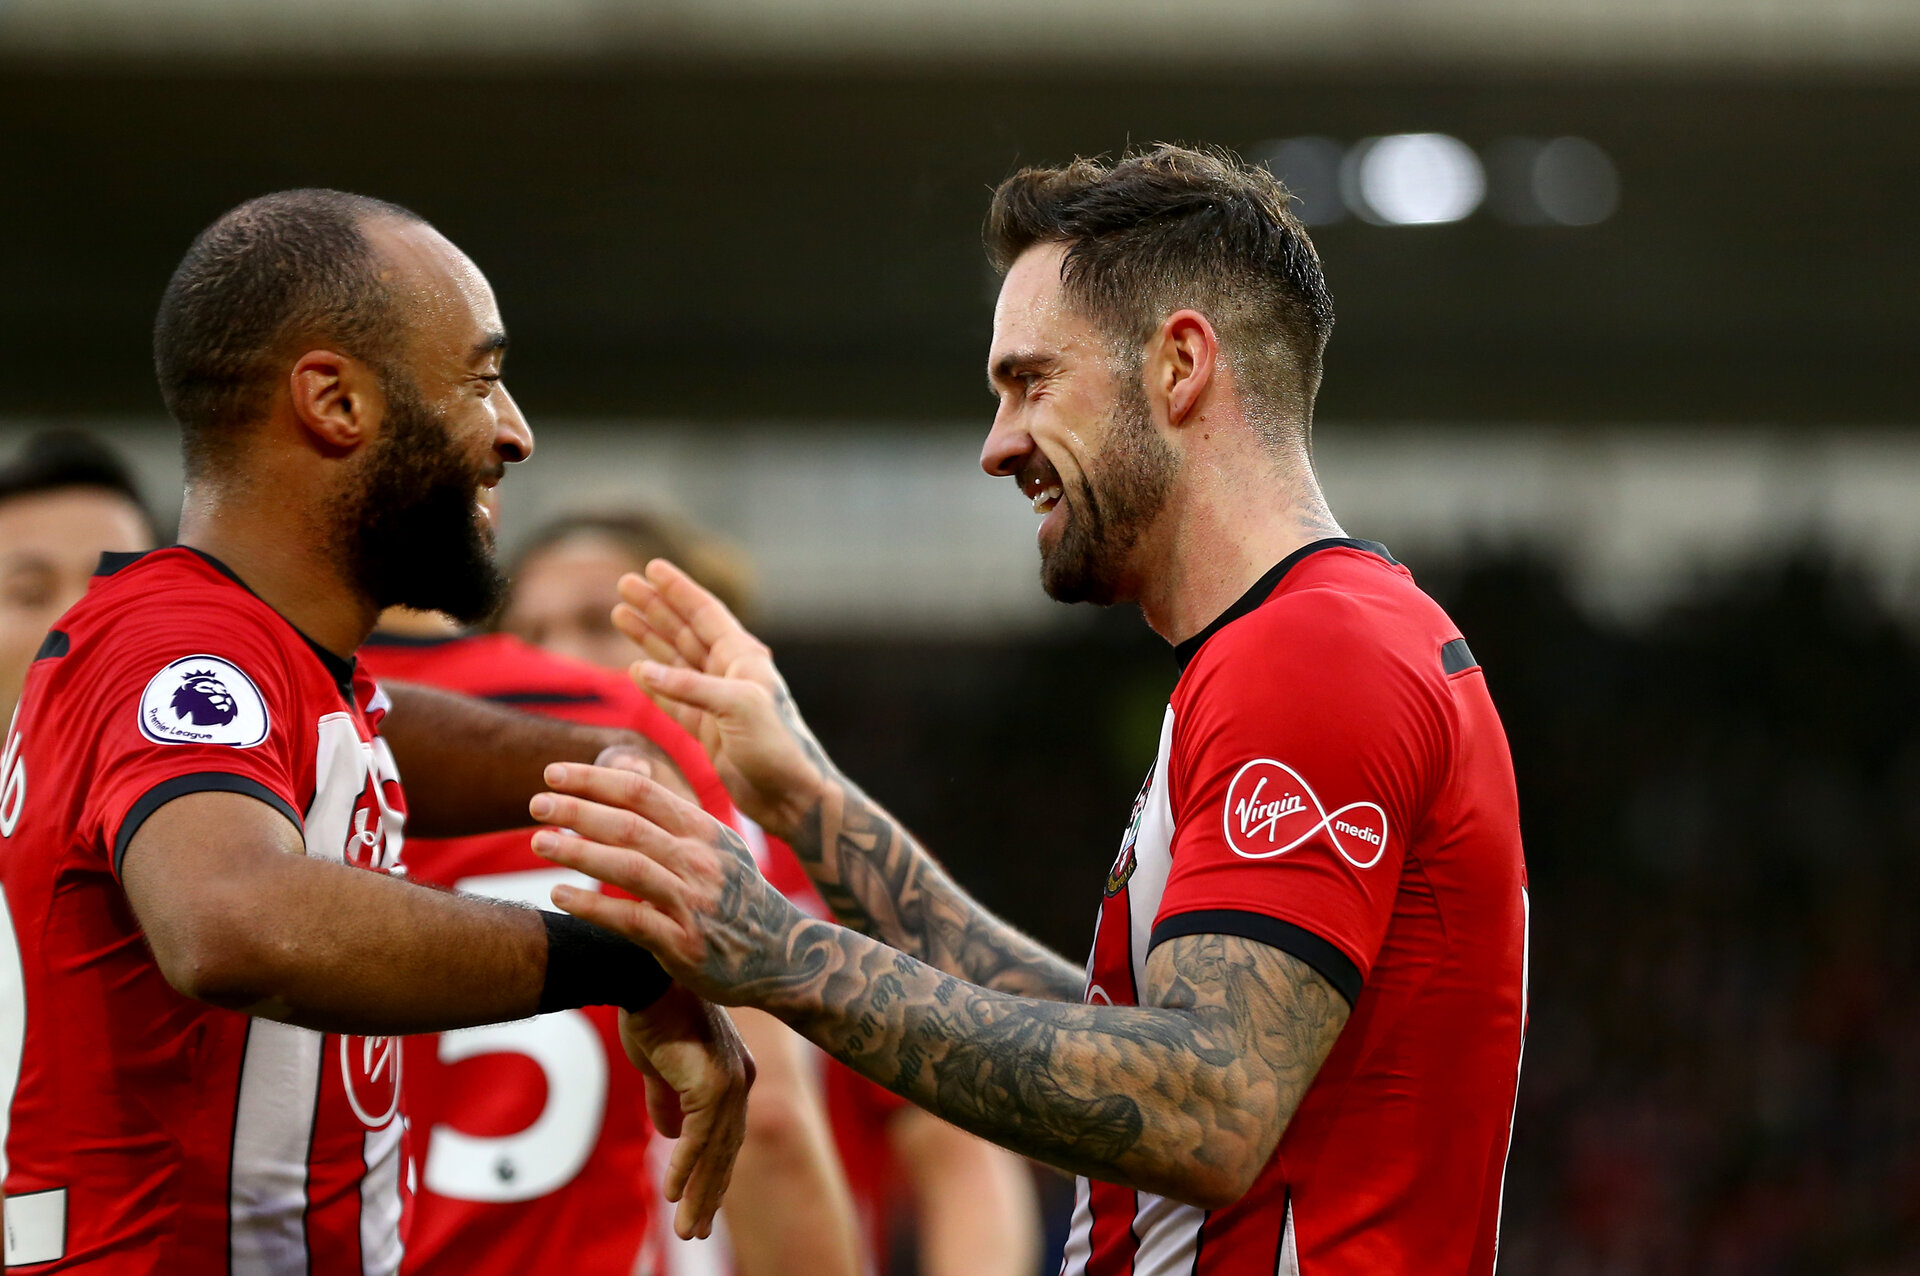 SOUTHAMPTON, ENGLAND - DECEMBER 16: Danny Ings(R) of Southampton celebrates with Nathan Redmond after scoring his second during the Premier League match between Southampton FC and Arsenal FC at St Mary's Stadium on December 15, 2018 in Southampton, United Kingdom. (Photo by Matt Watson/Southampton FC via Getty Images)